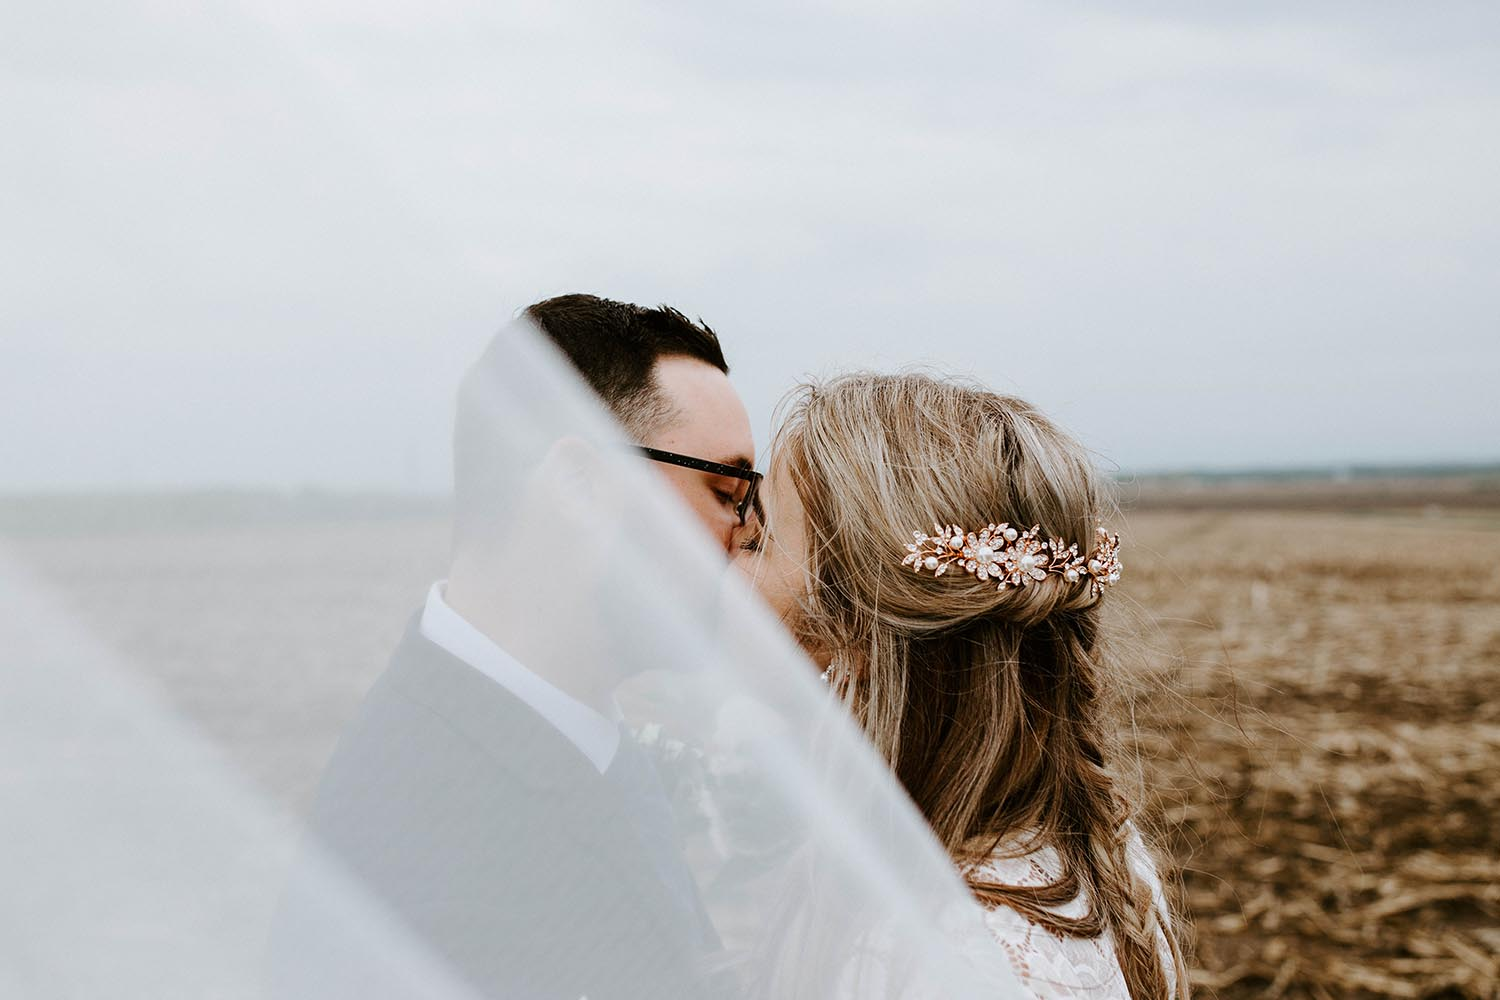 dowswell-wedding-photos-copperred-photography.jpg